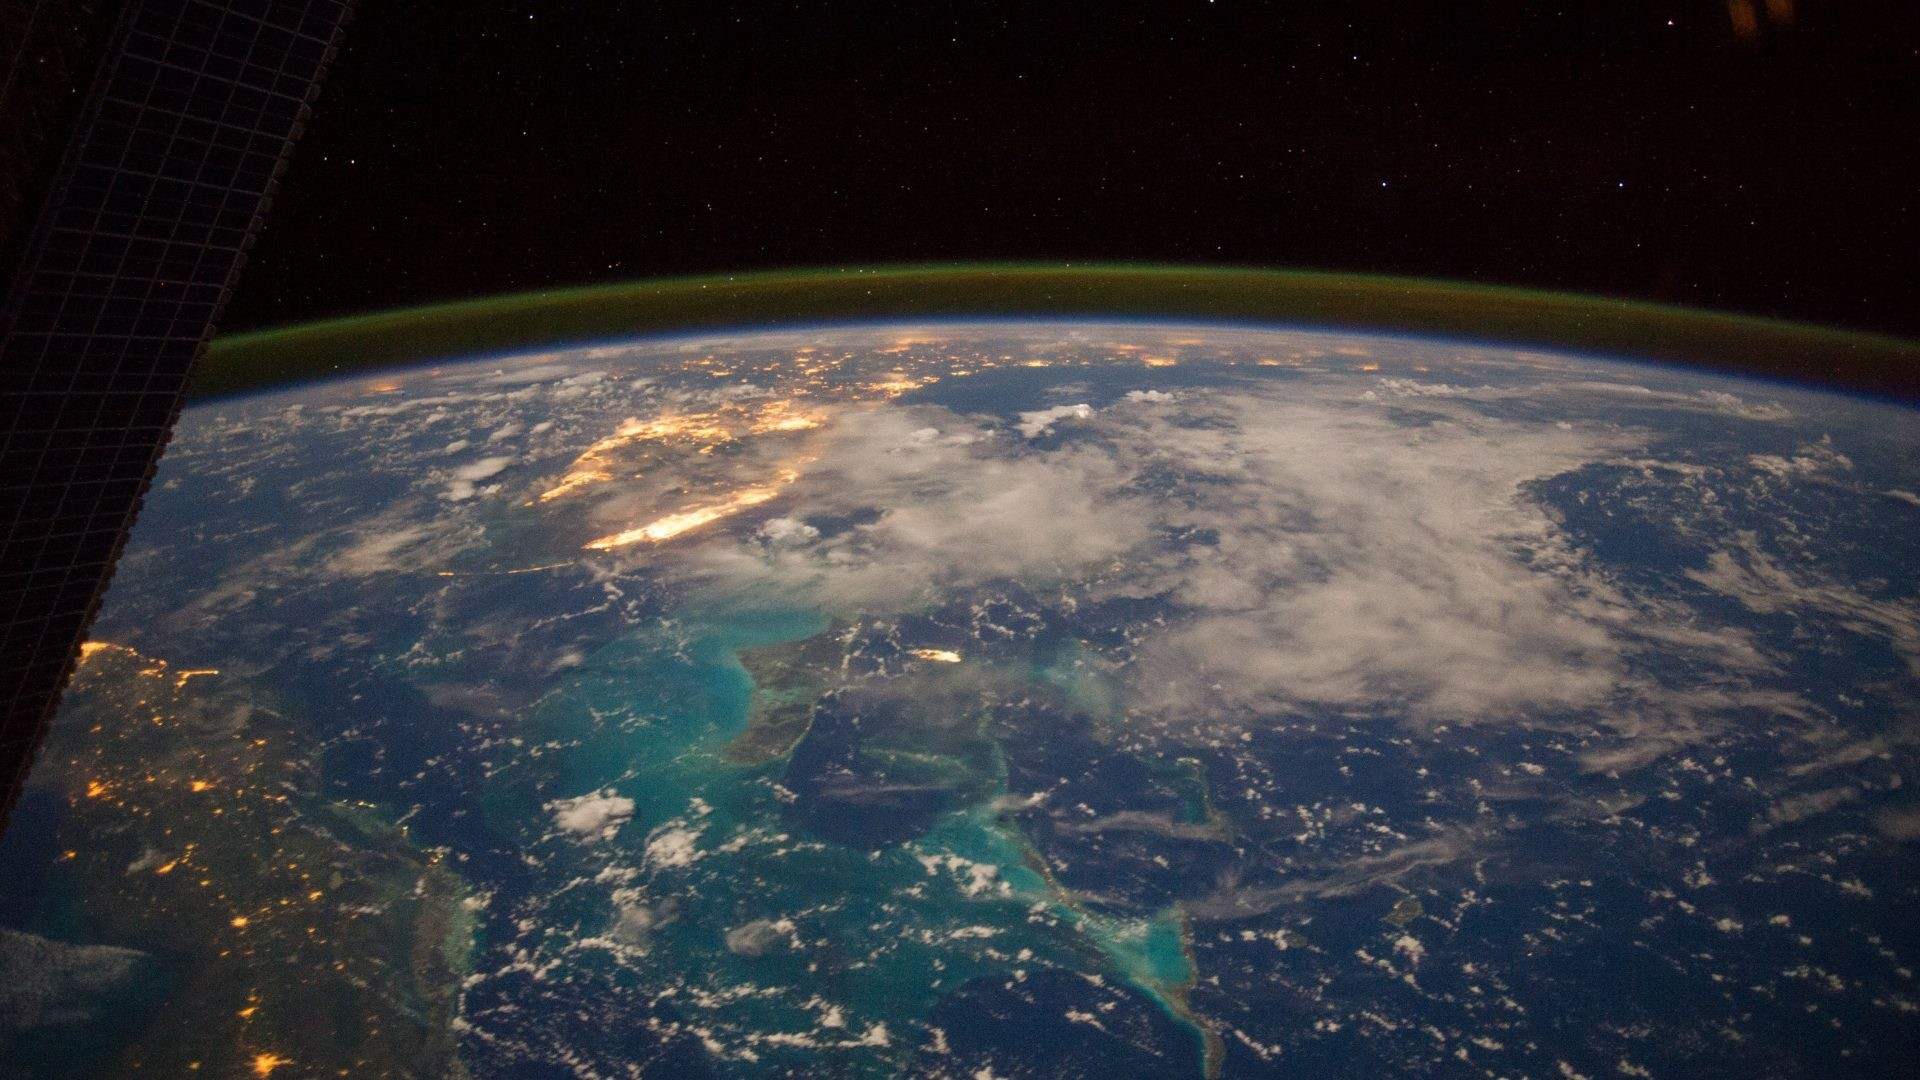 1920x1080 Nasa Tag - Cuba Planet Earth Florida Nasa Carribean Space Bahamas Download  Desktop Background Nature for